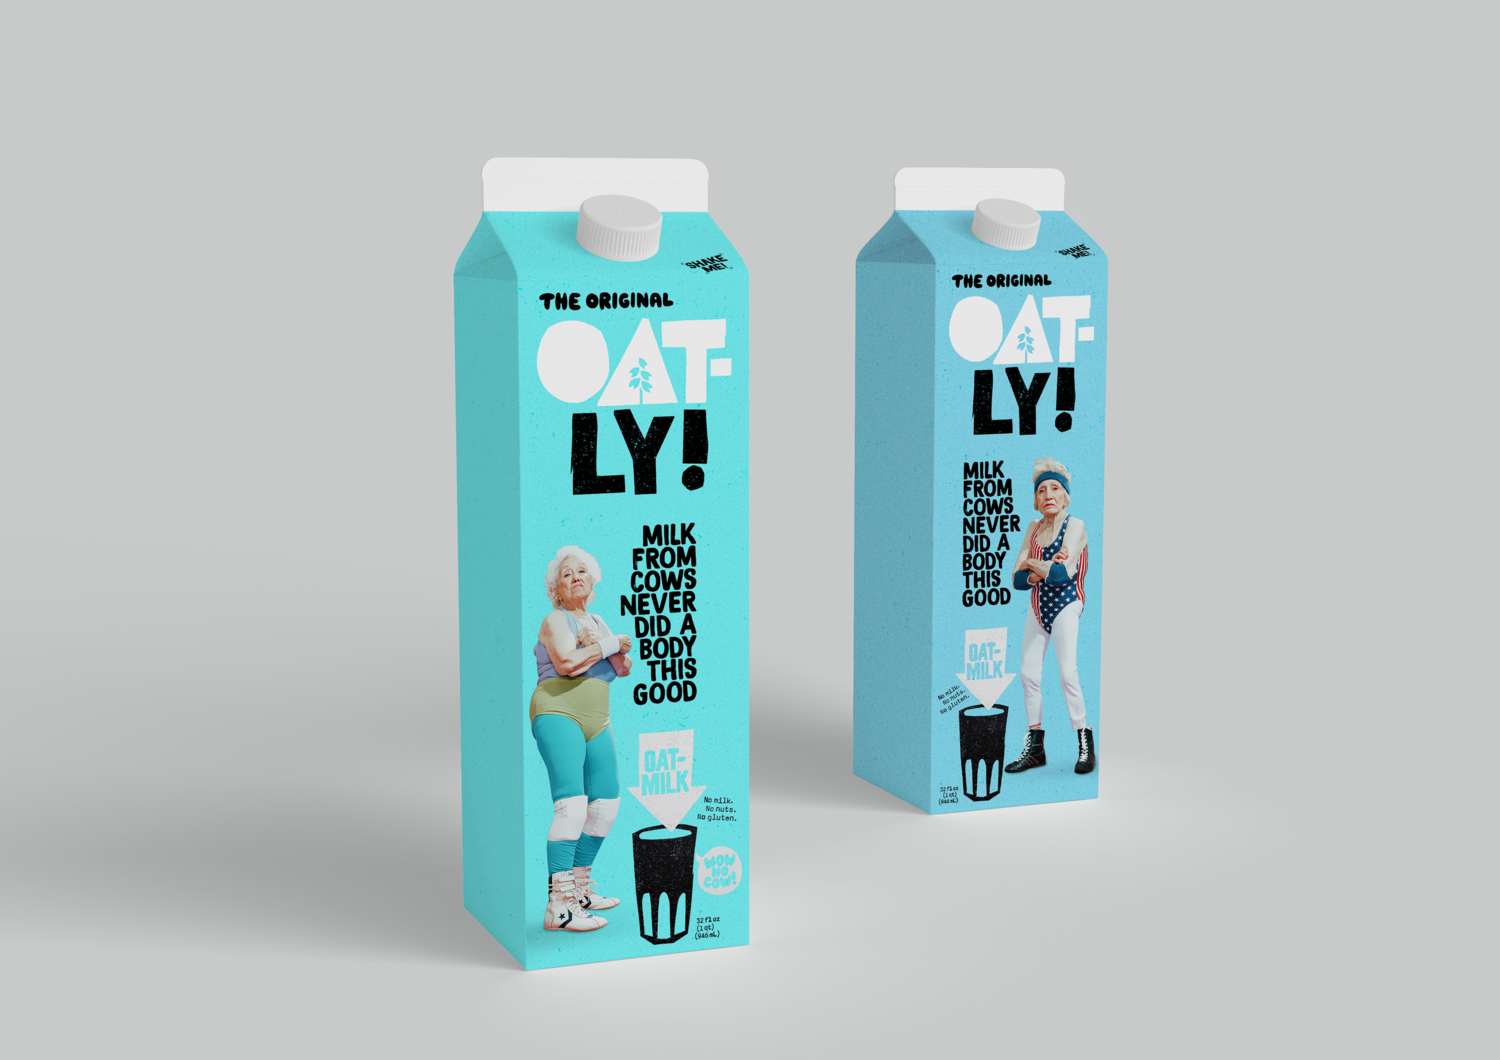 Oatly_DoesABodyBetter_Packaging.png